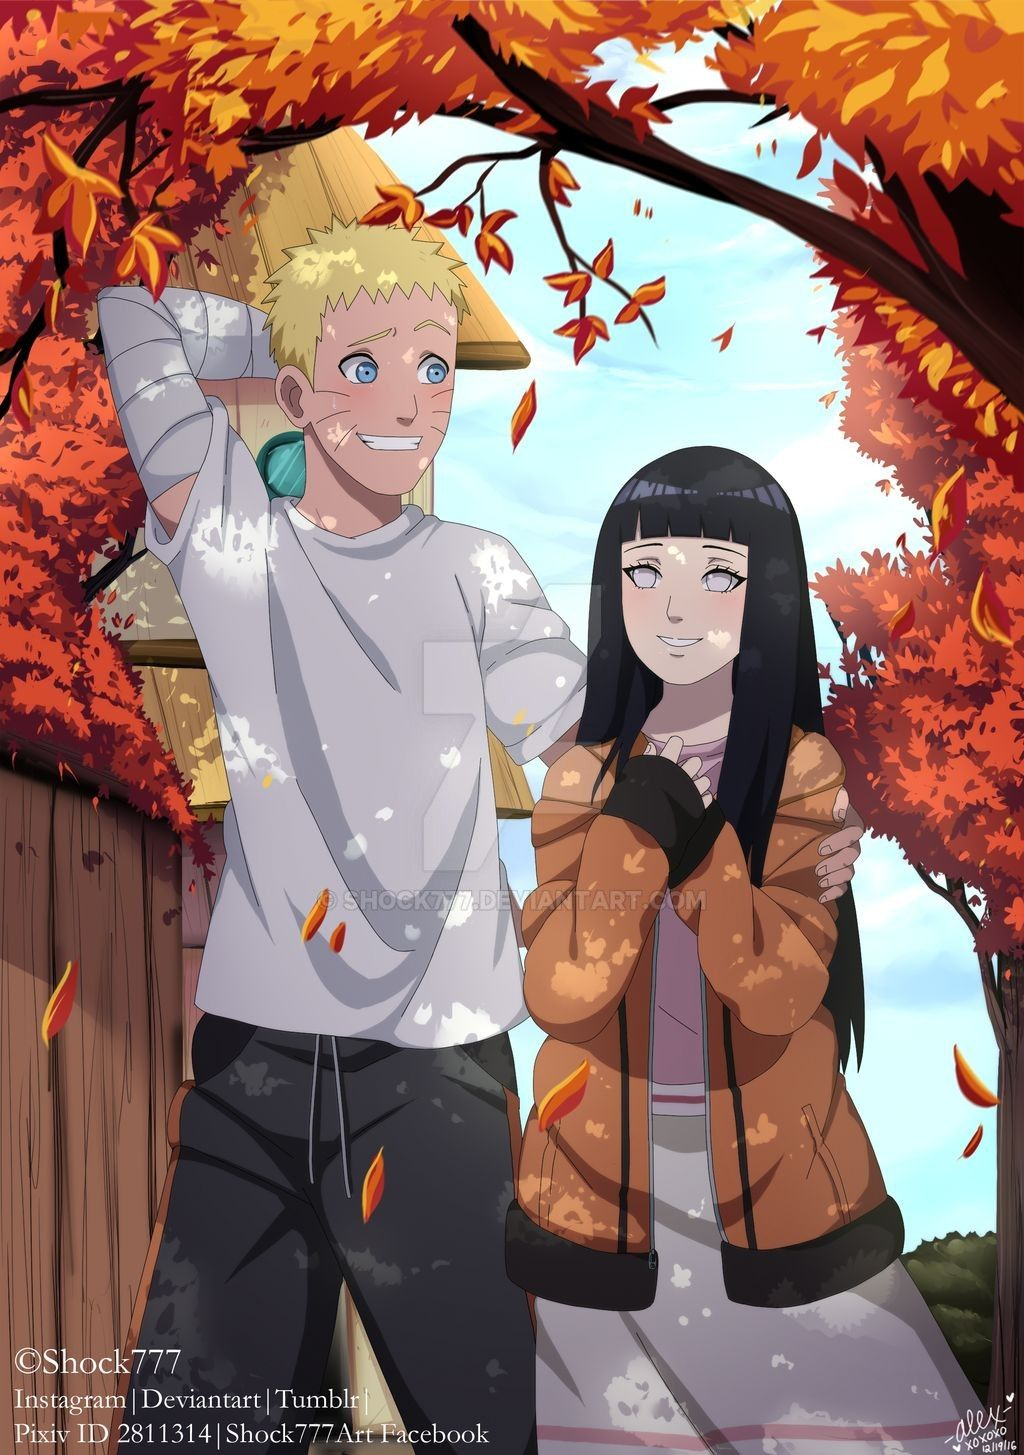 Naruhina Fan Magazine Entry By Shock777 On DeviantArt